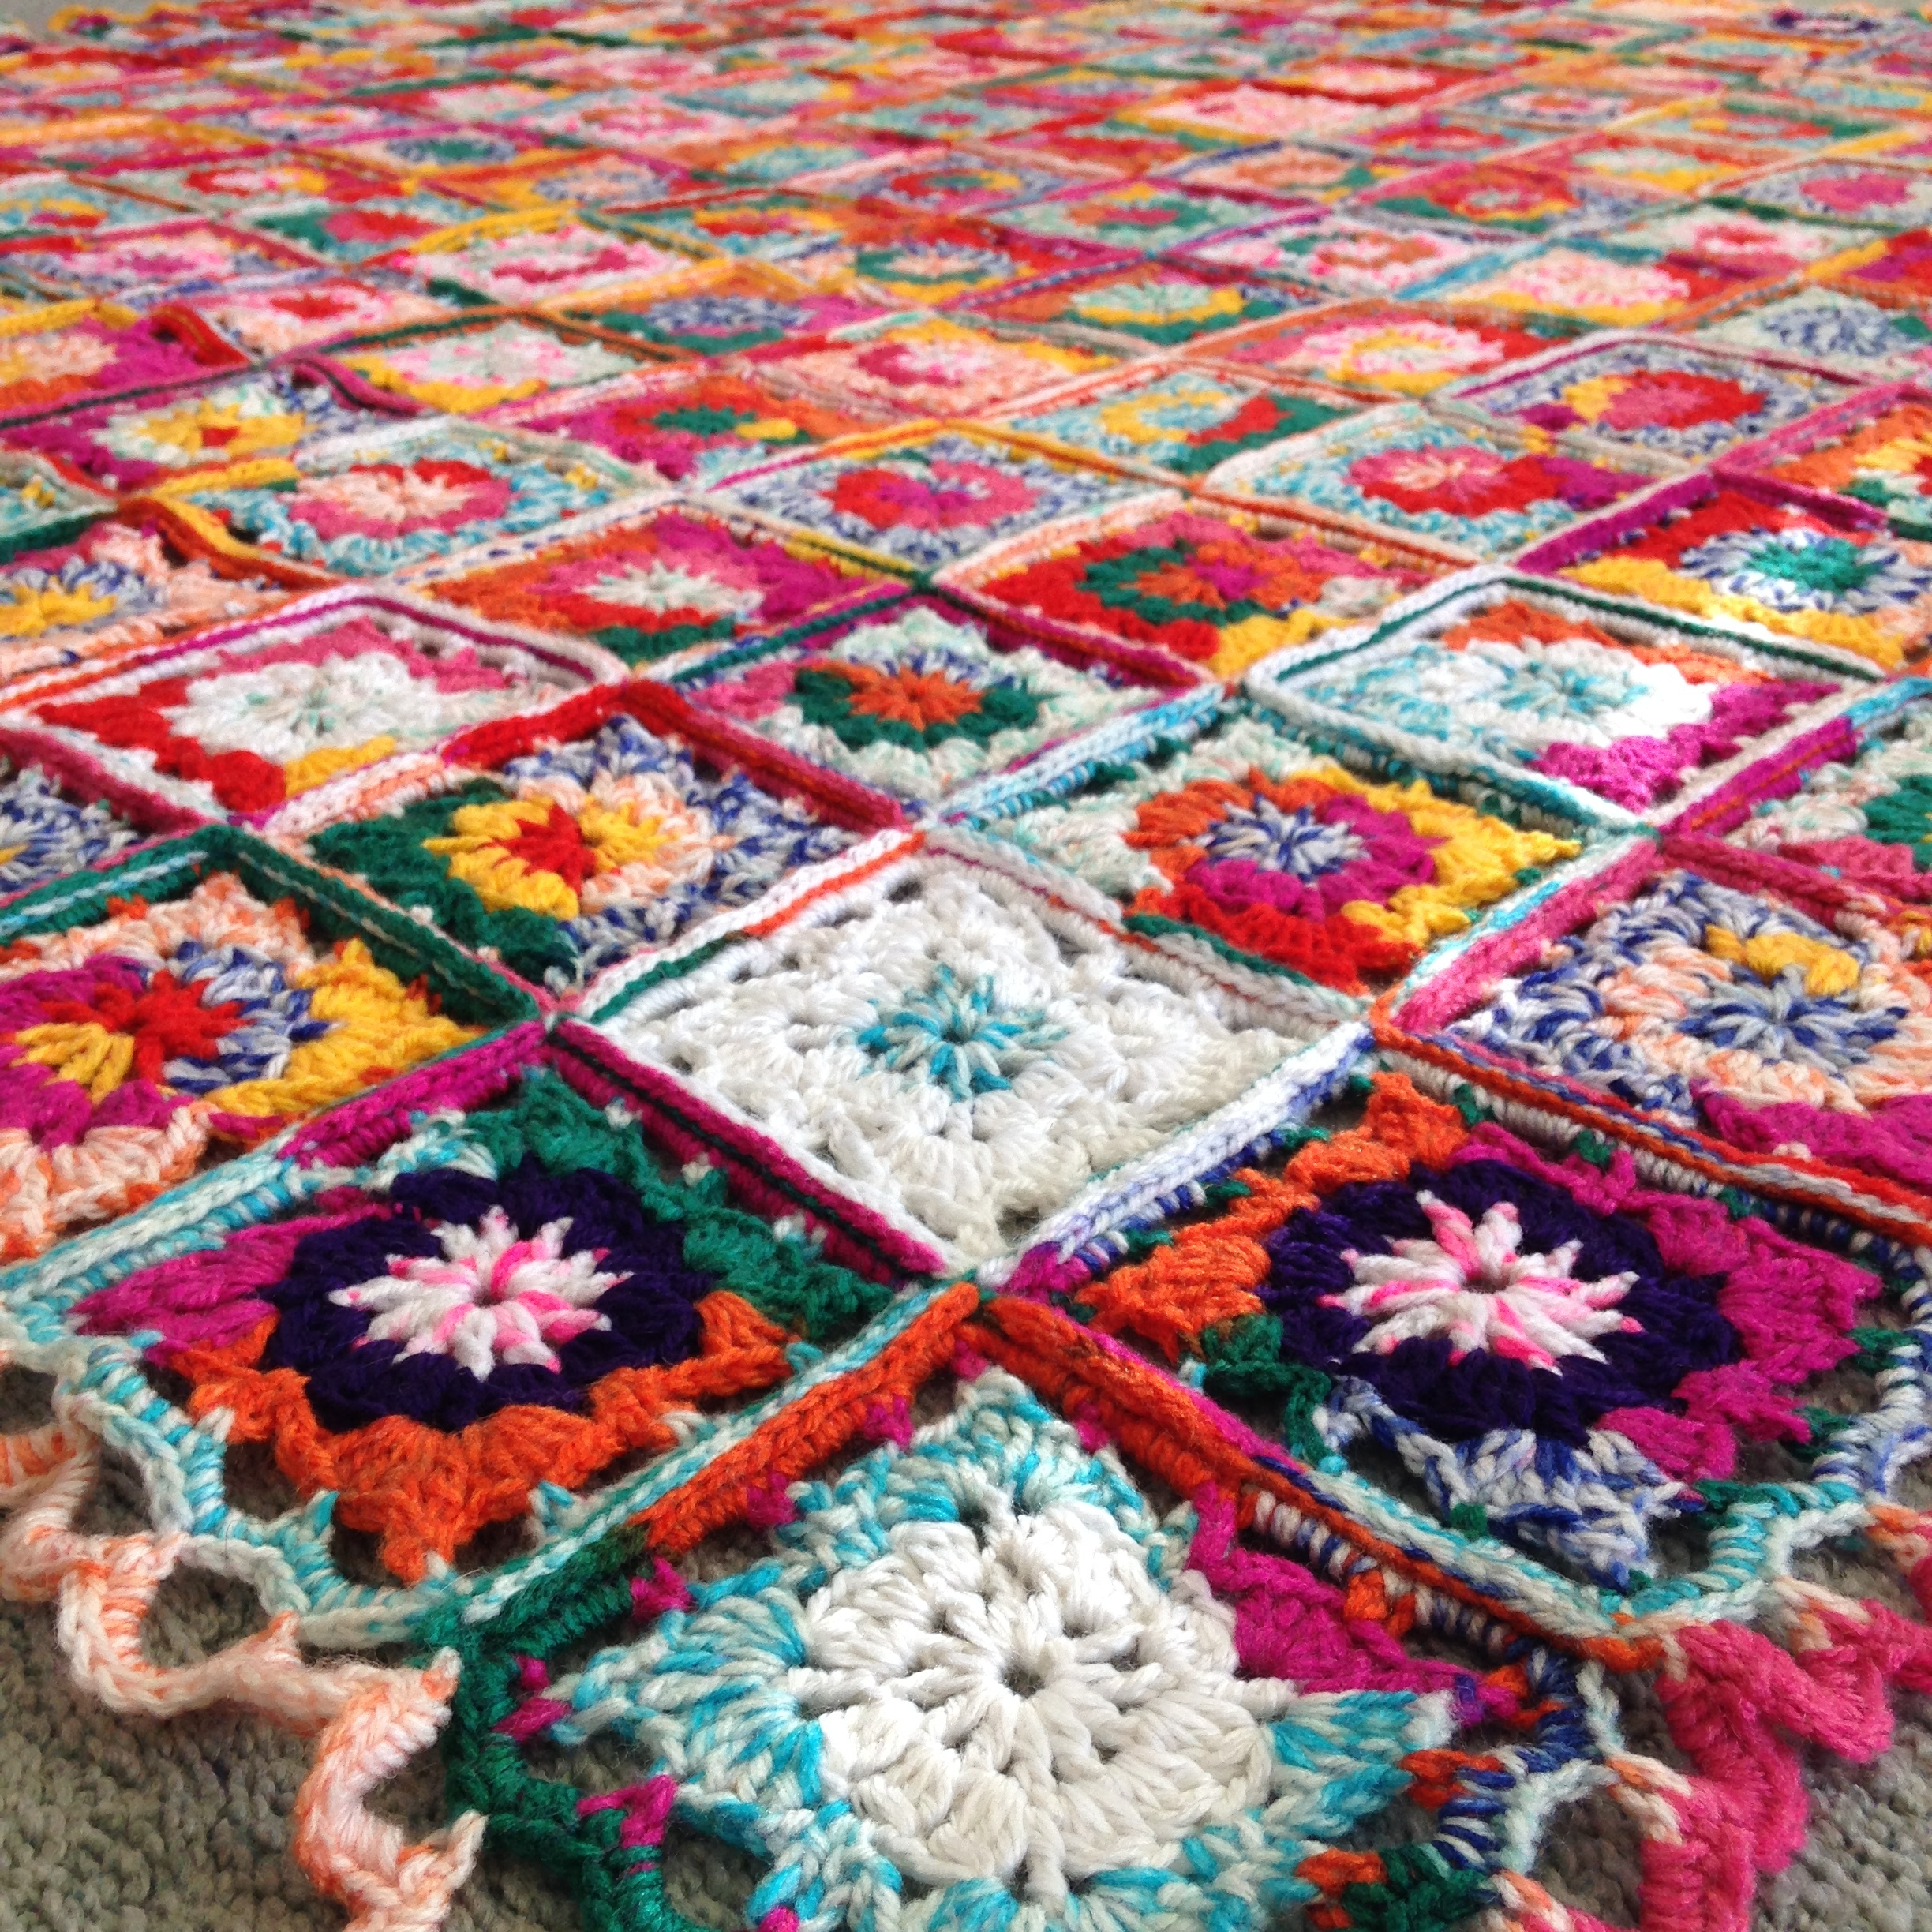 'Only Warmth Heals' , Acrylic and wool crochet blanket, 1520 x 1520mm, 1/1, 2016